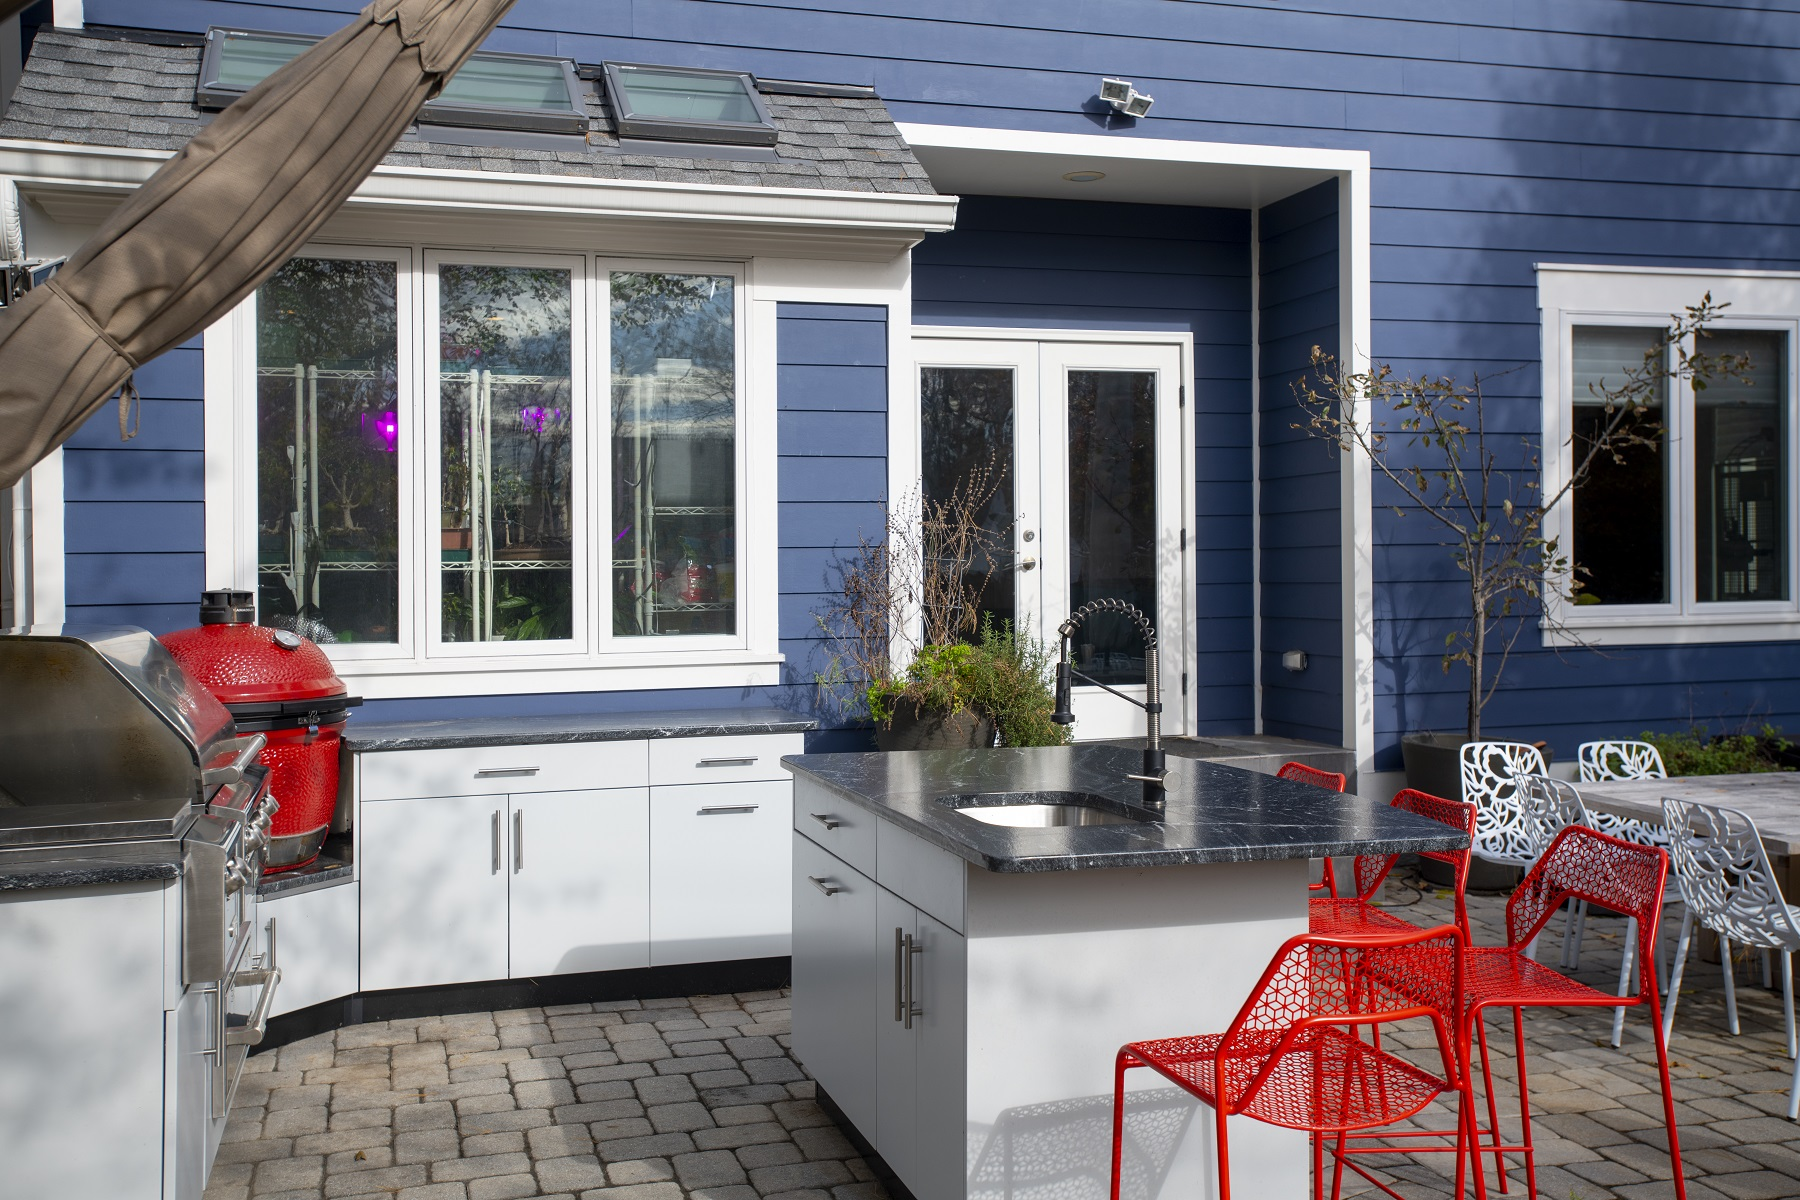 outdoor kitchen design in virginia with white powder coated cabinetry and a red green egg smoker